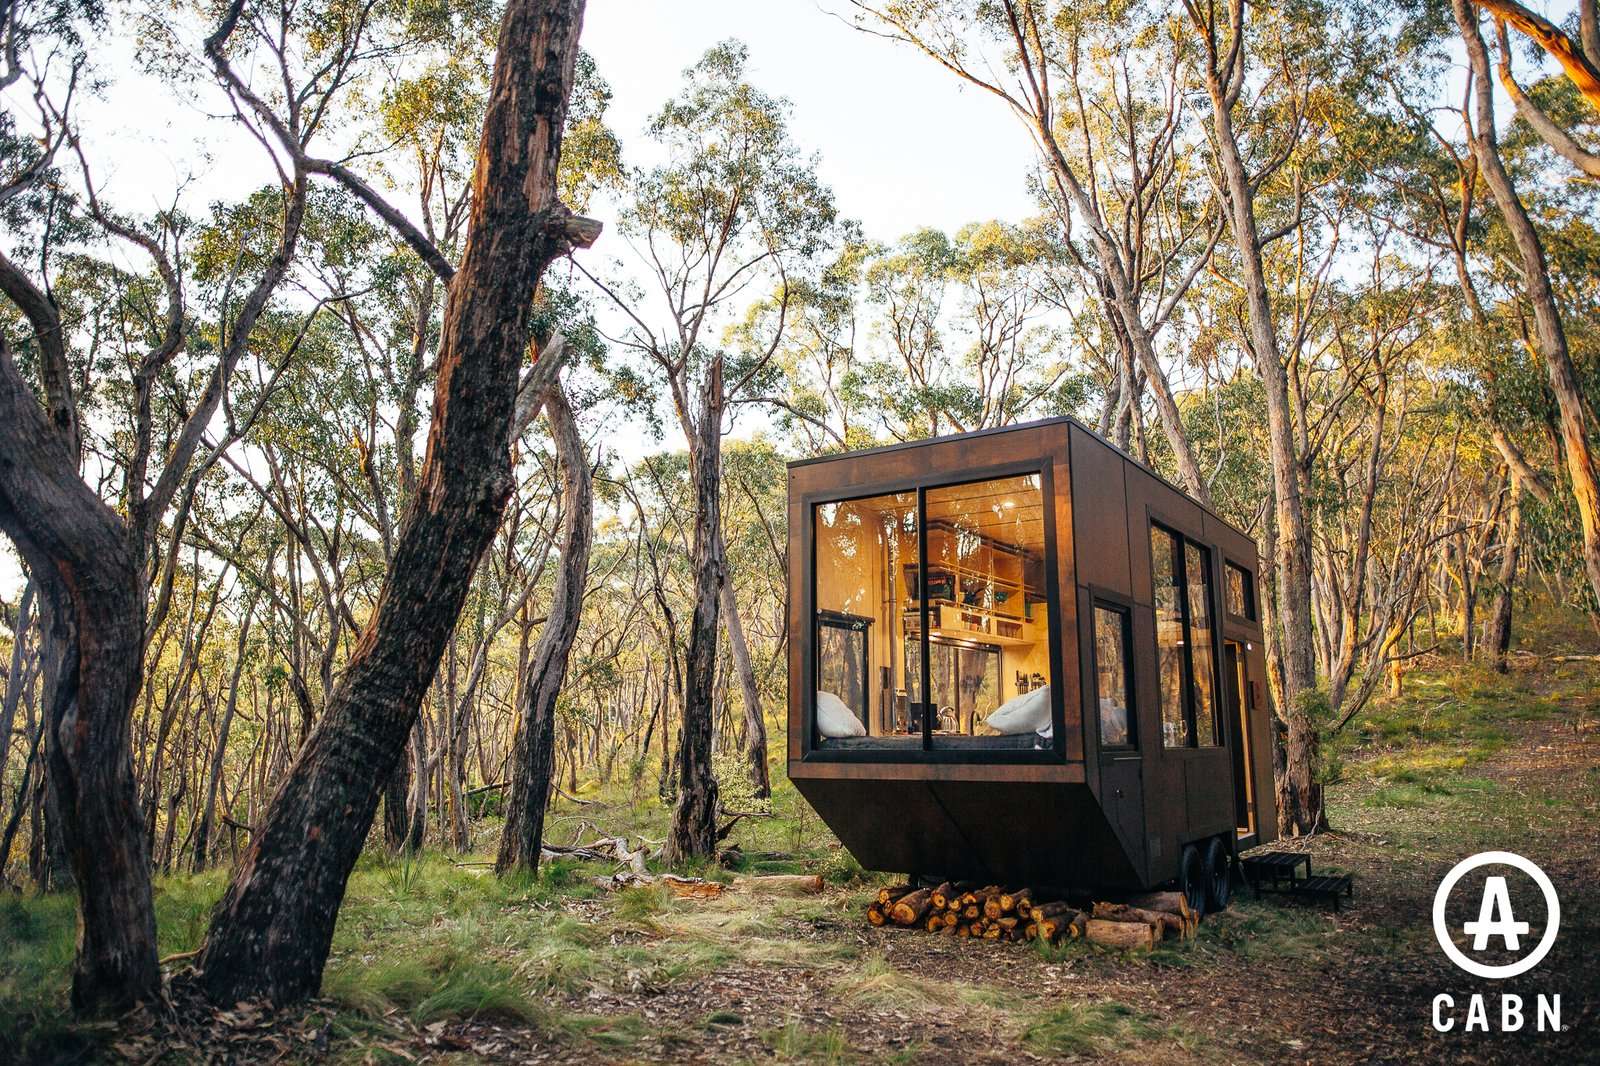 Exterior, Metal Siding Material, Small Home Building Type, Wood Siding Material, Flat RoofLine, Tiny Home Building Type, and Metal Roof Material A self sustainable, eco friendly, Australian made tiny home.  CABN